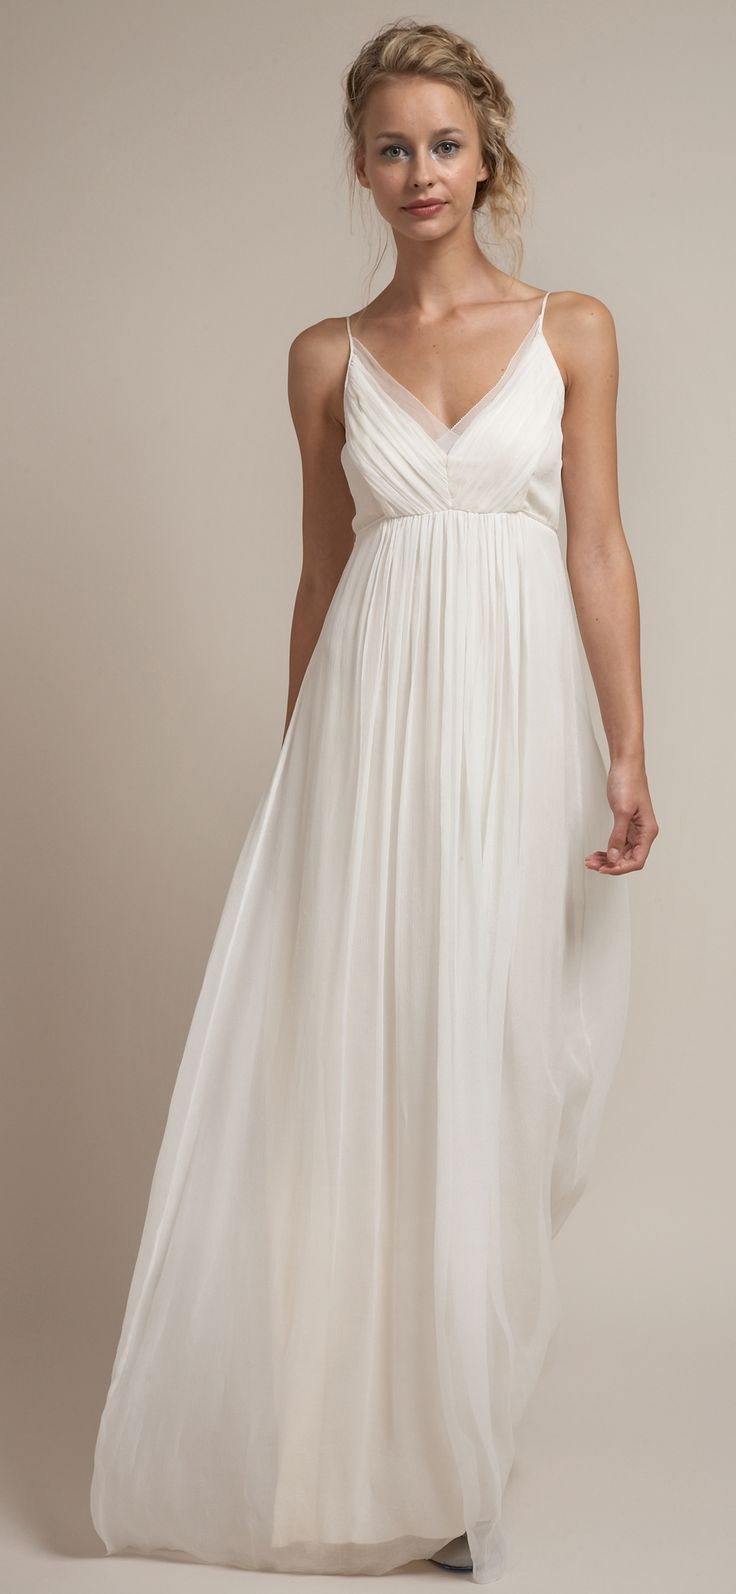 Casual Chiffon Beach Wedding Dress With Spaghetti Strap Front For